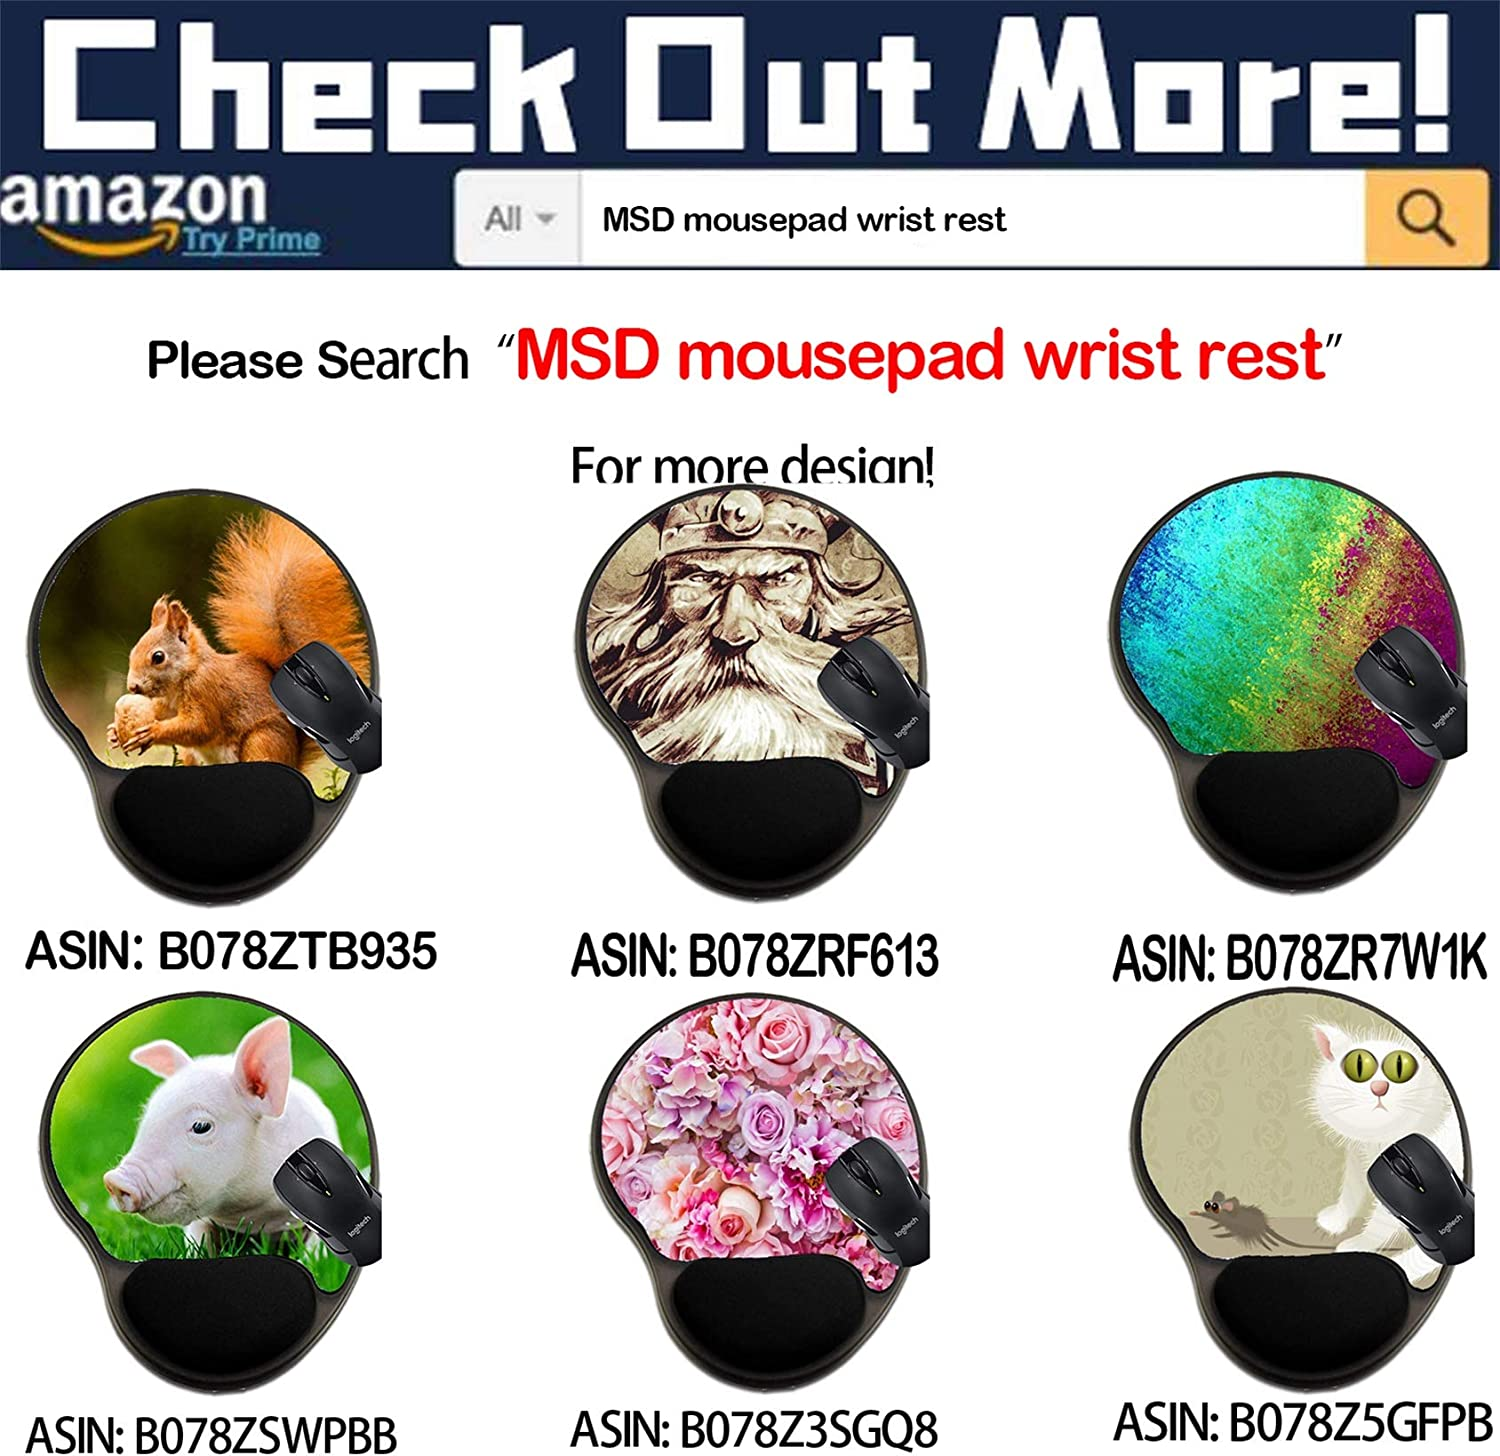 Mat with Wrist Support MSD Mousepad Wrist Rest Protected Mouse Pads 39949085 Pet Group Concept as Dogs Cats a Hamster and Budgie Gathered Together ID